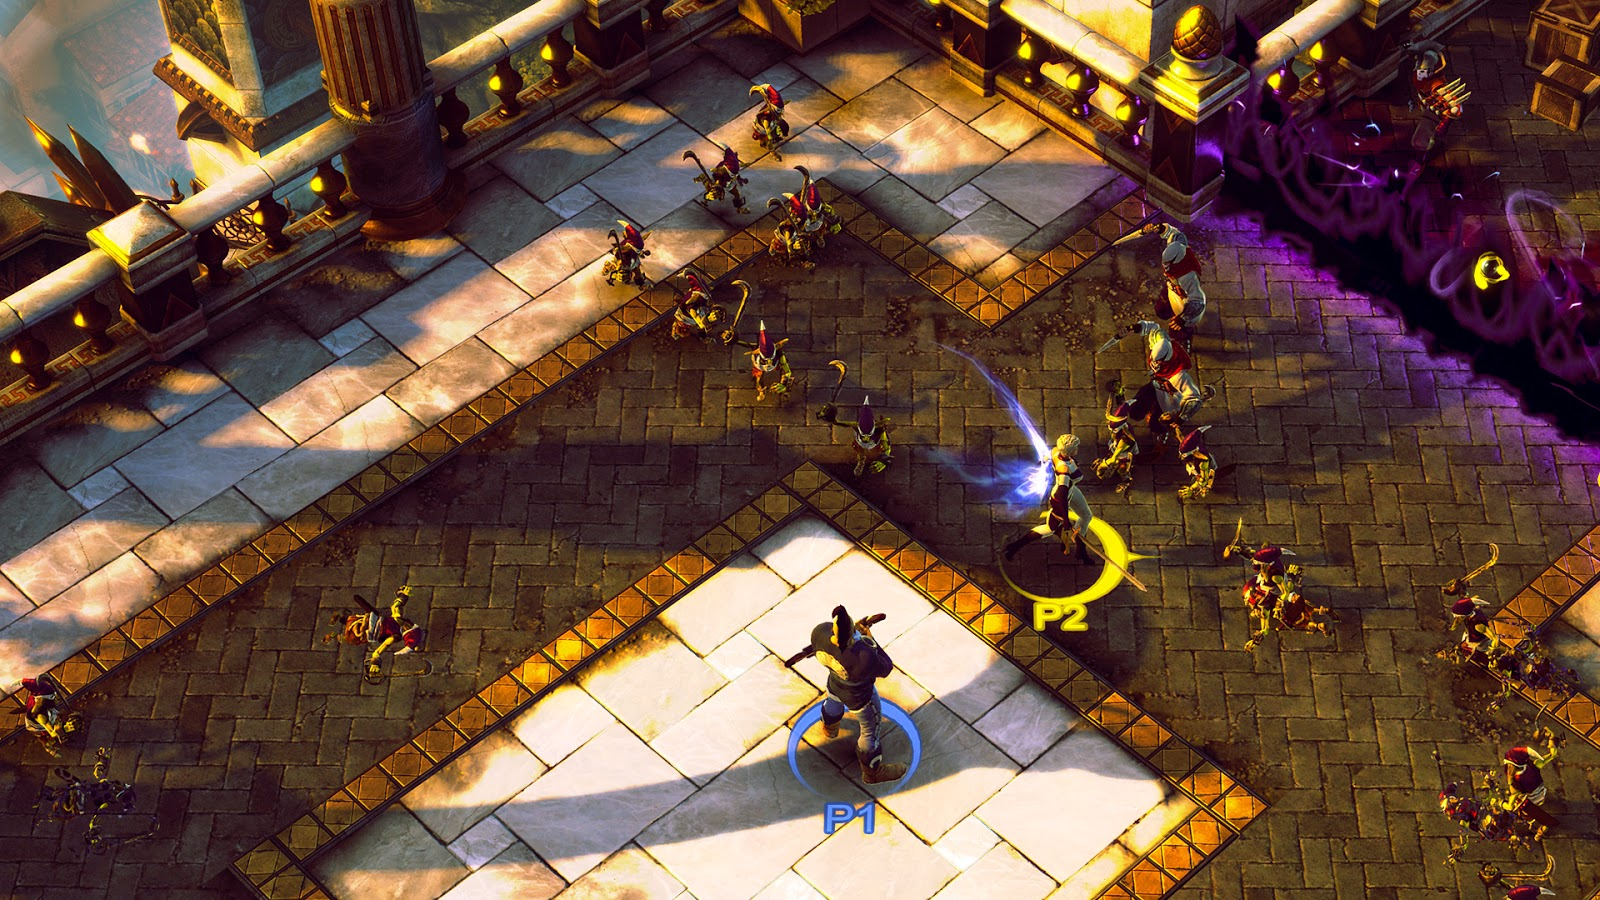 RPG action game Sacred 3